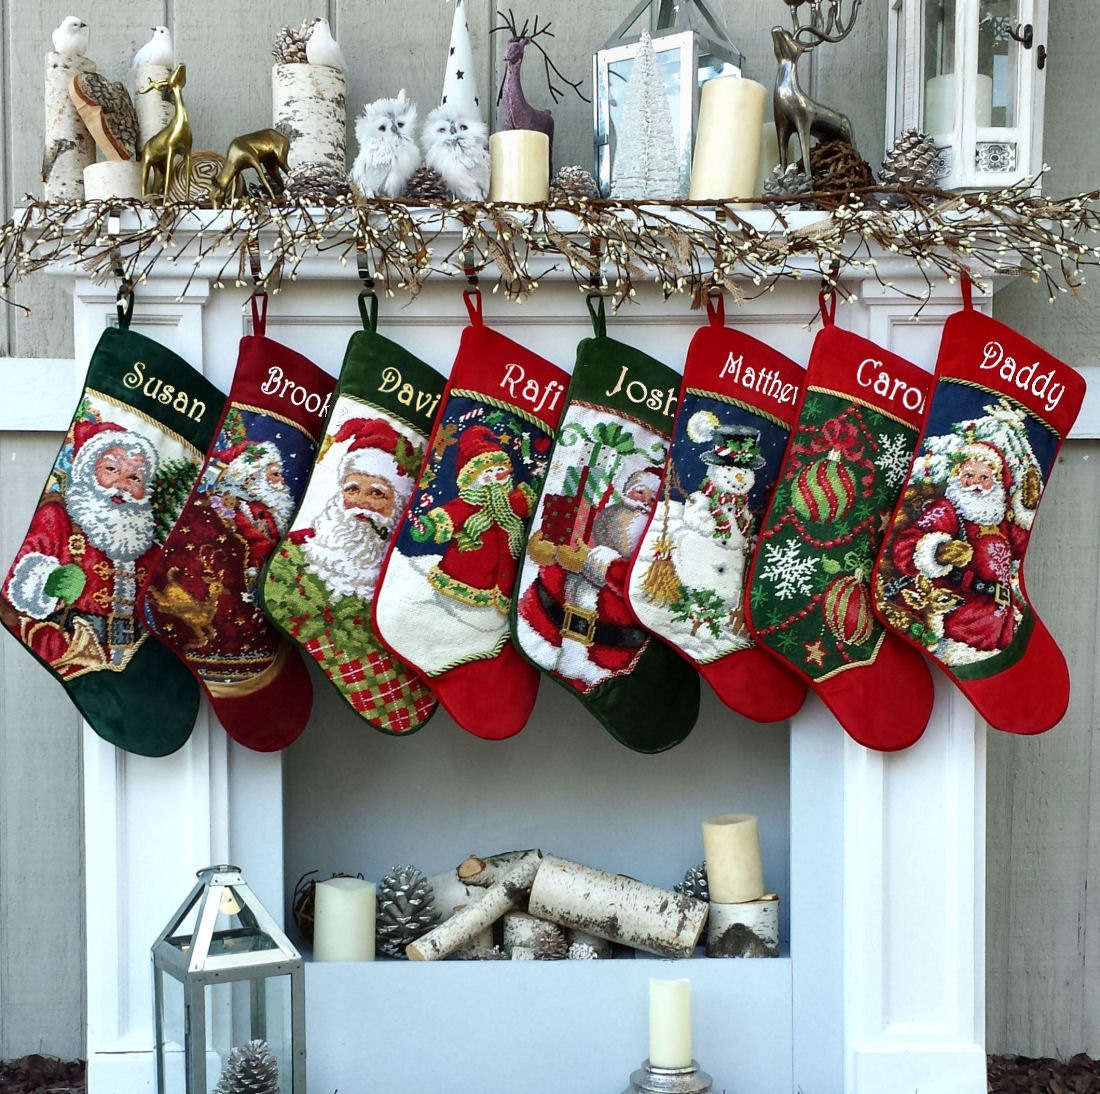 Embroidered christmas ornaments - Personalized Needlepoint Christmas Stockings Santa Snowman Embroidered With Names For The Whole Family